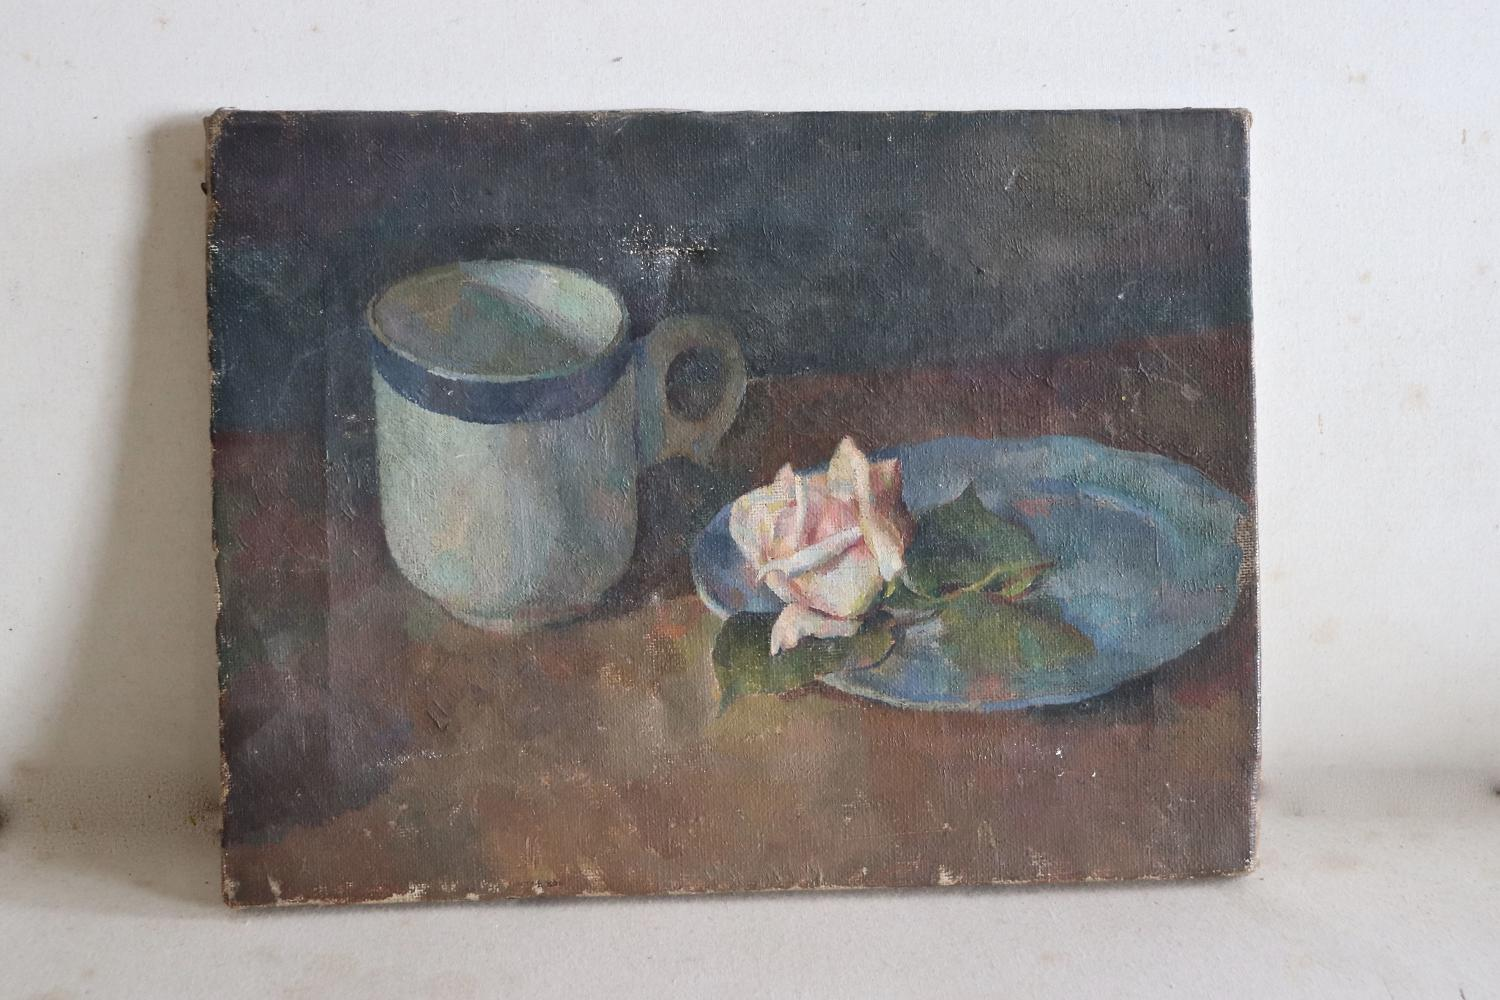 Small early 20th century oil painting